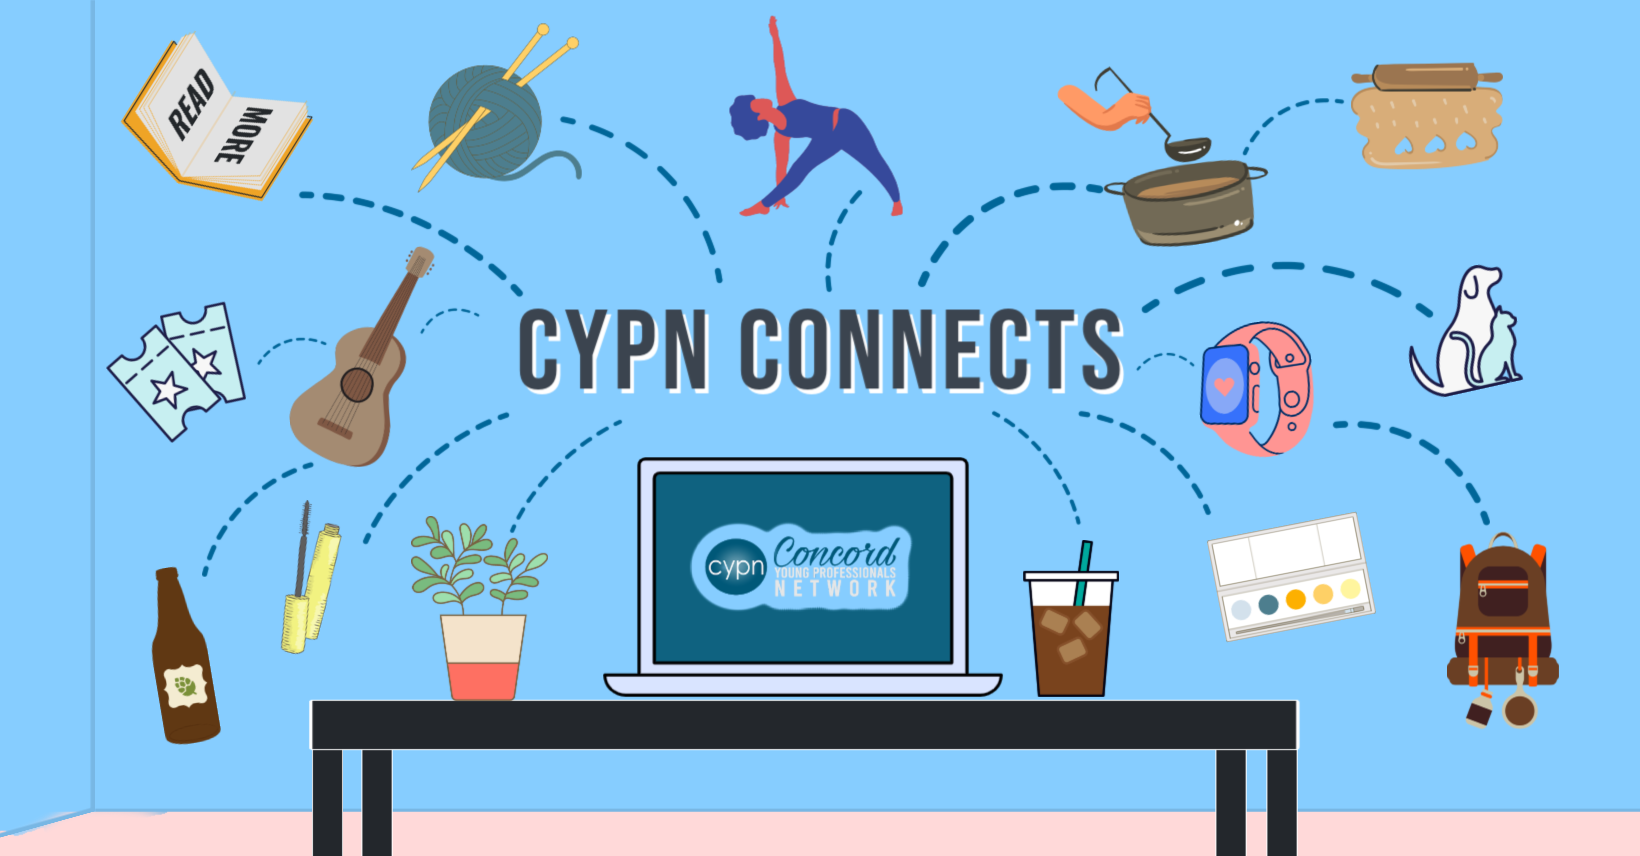 CYPN Connects